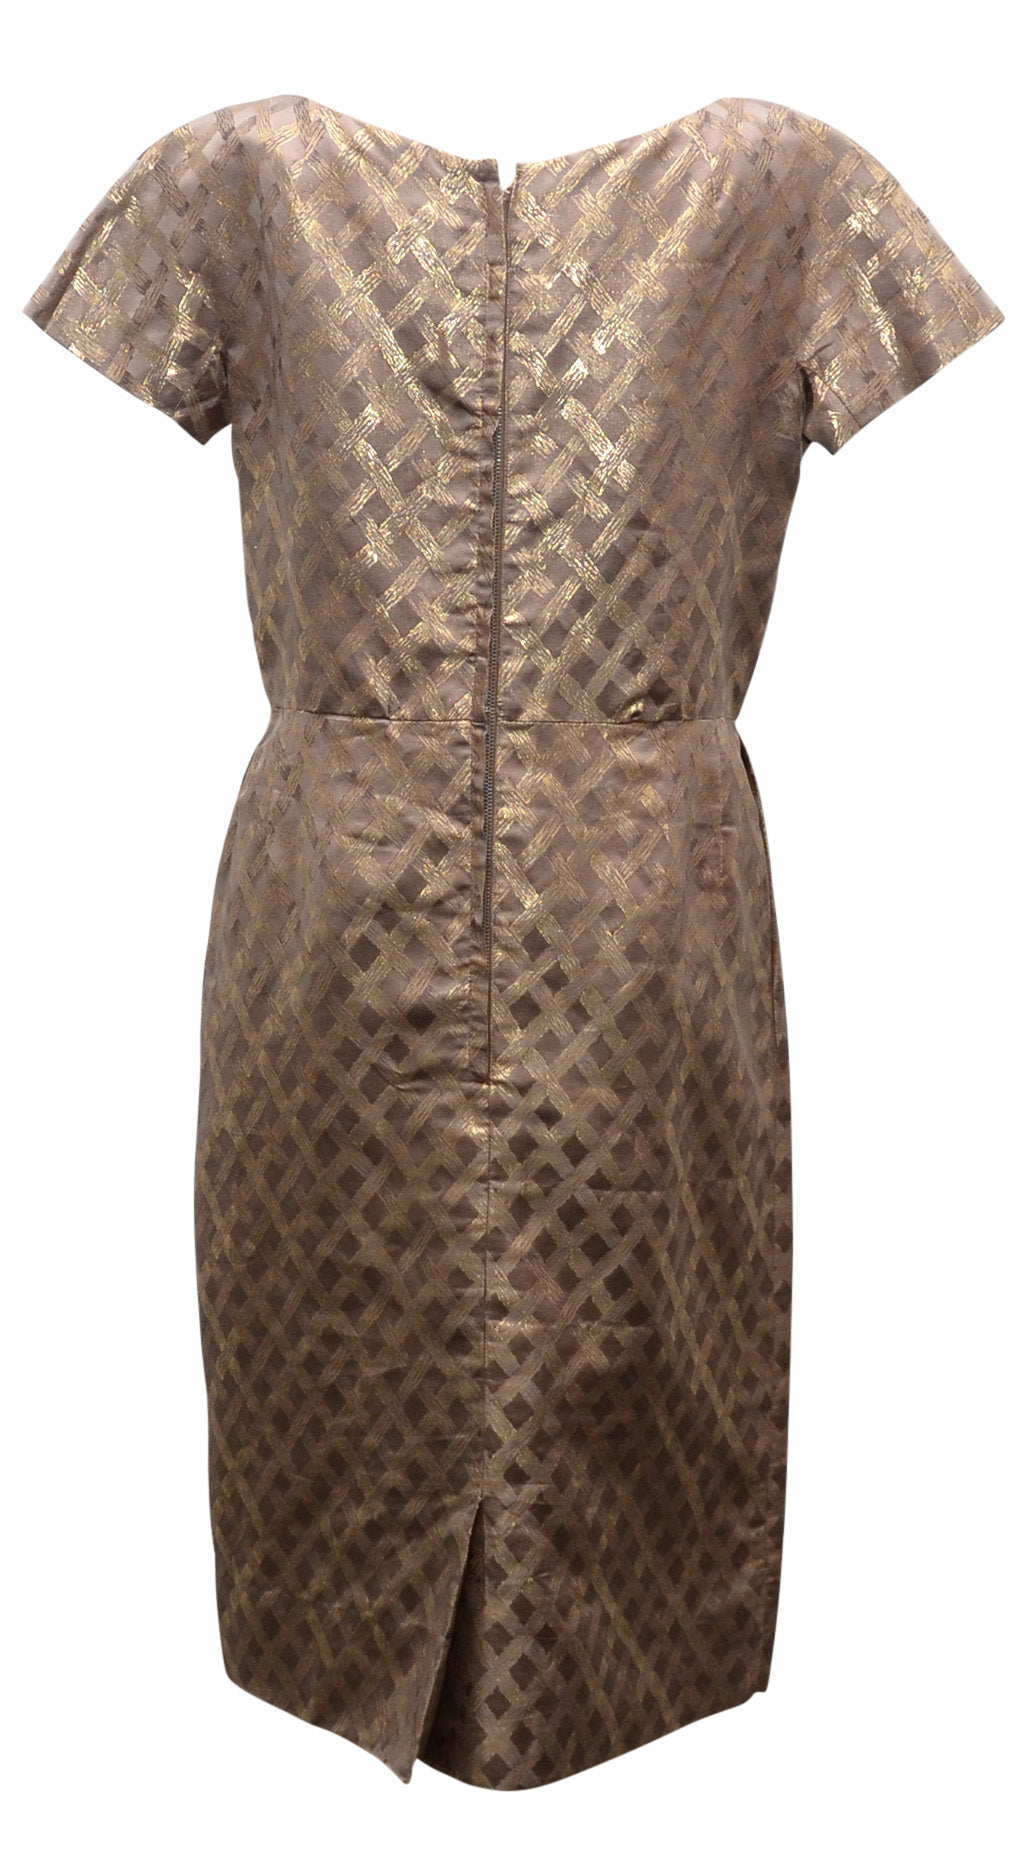 Metallic print vintage dress